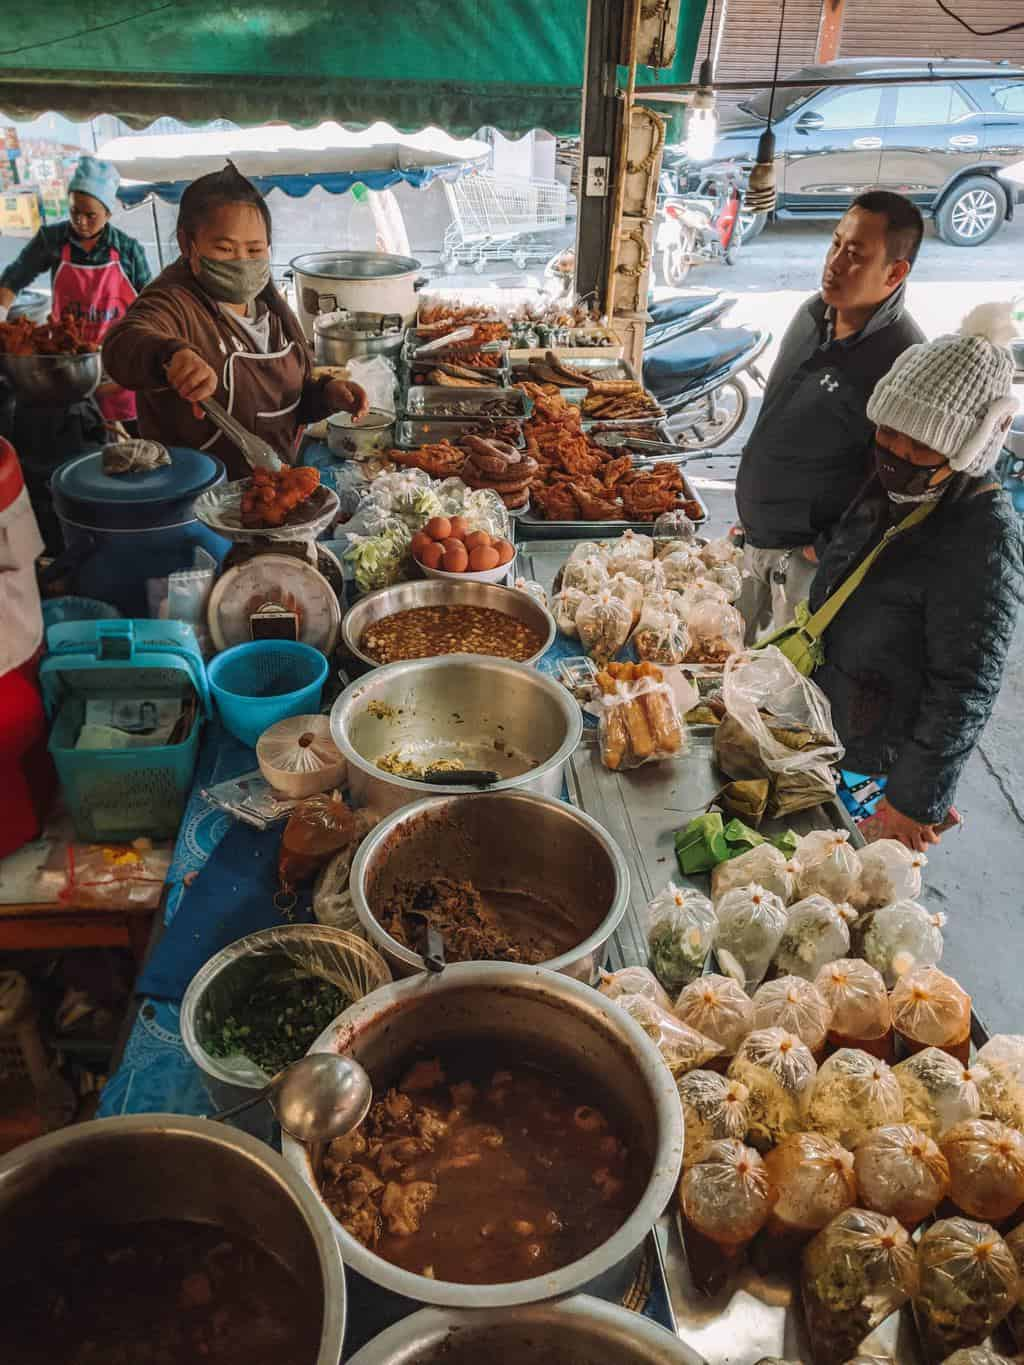 a Thai market stall selling food to take away, planning a trip to thailand